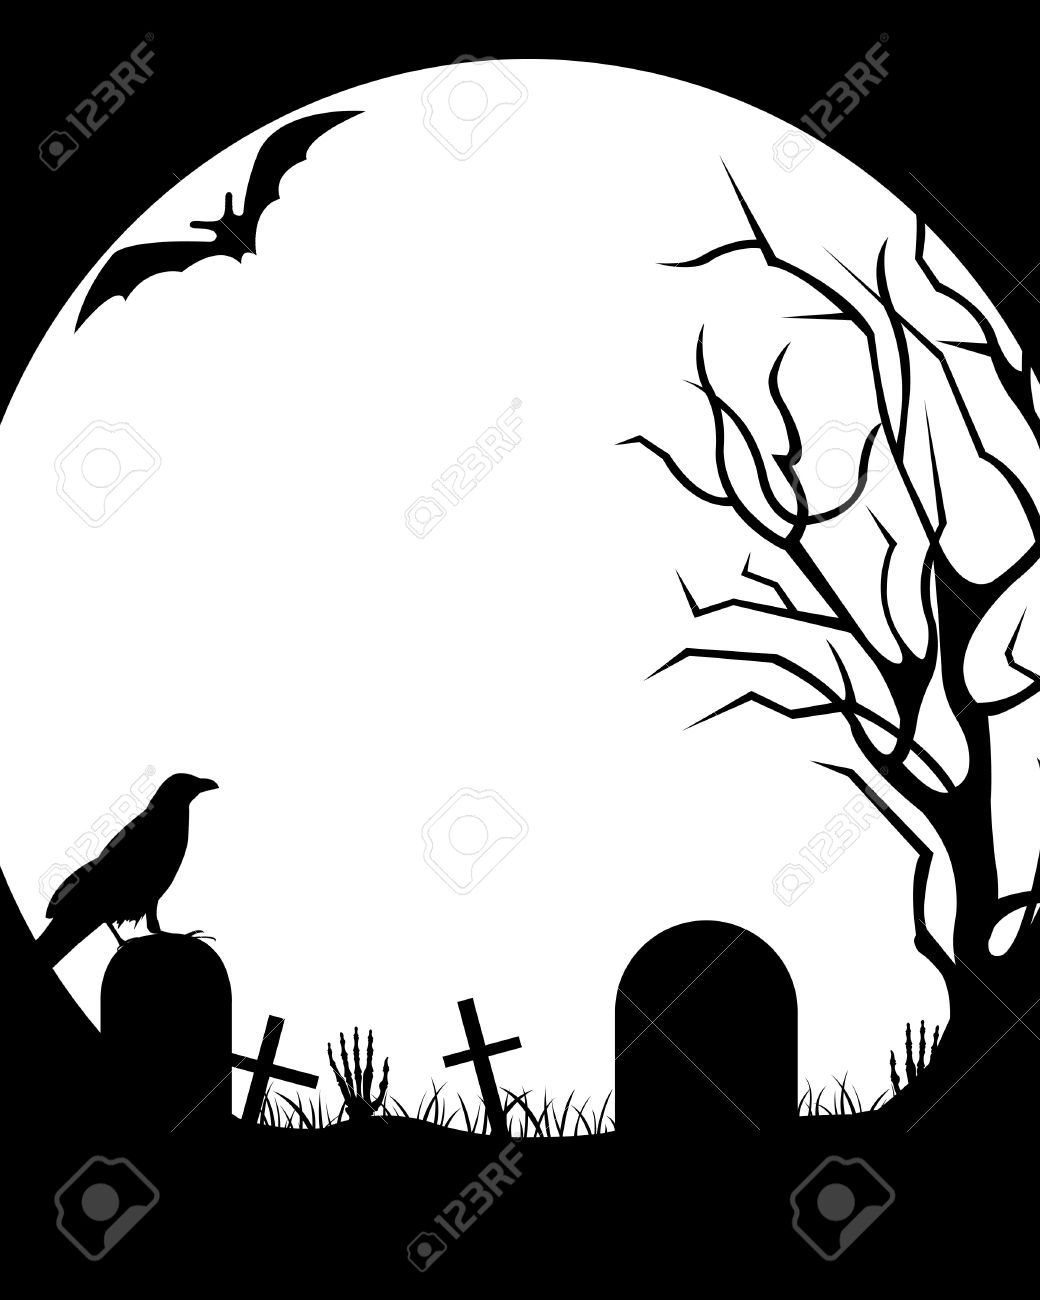 Halloween illustration with moon in background - 23052647